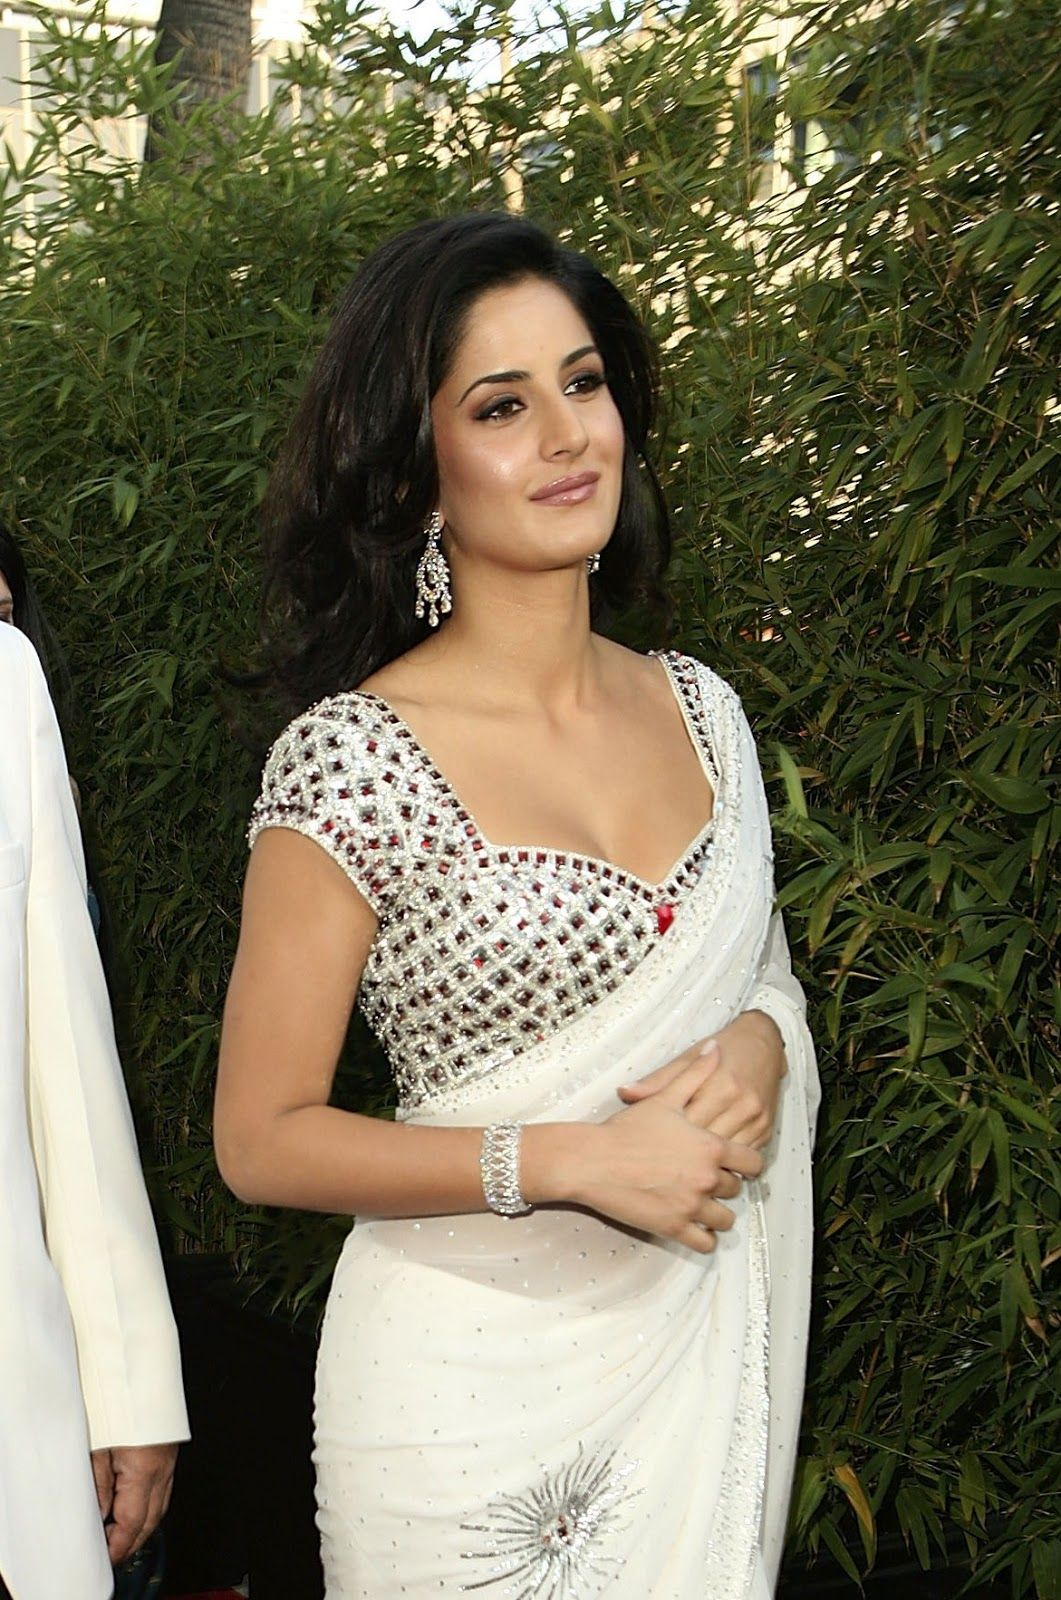 Katrina Kaif Iest Cleavage Show In Saree At The Opening Event Of Night India Splendor Beverly Hills California Gossips 4